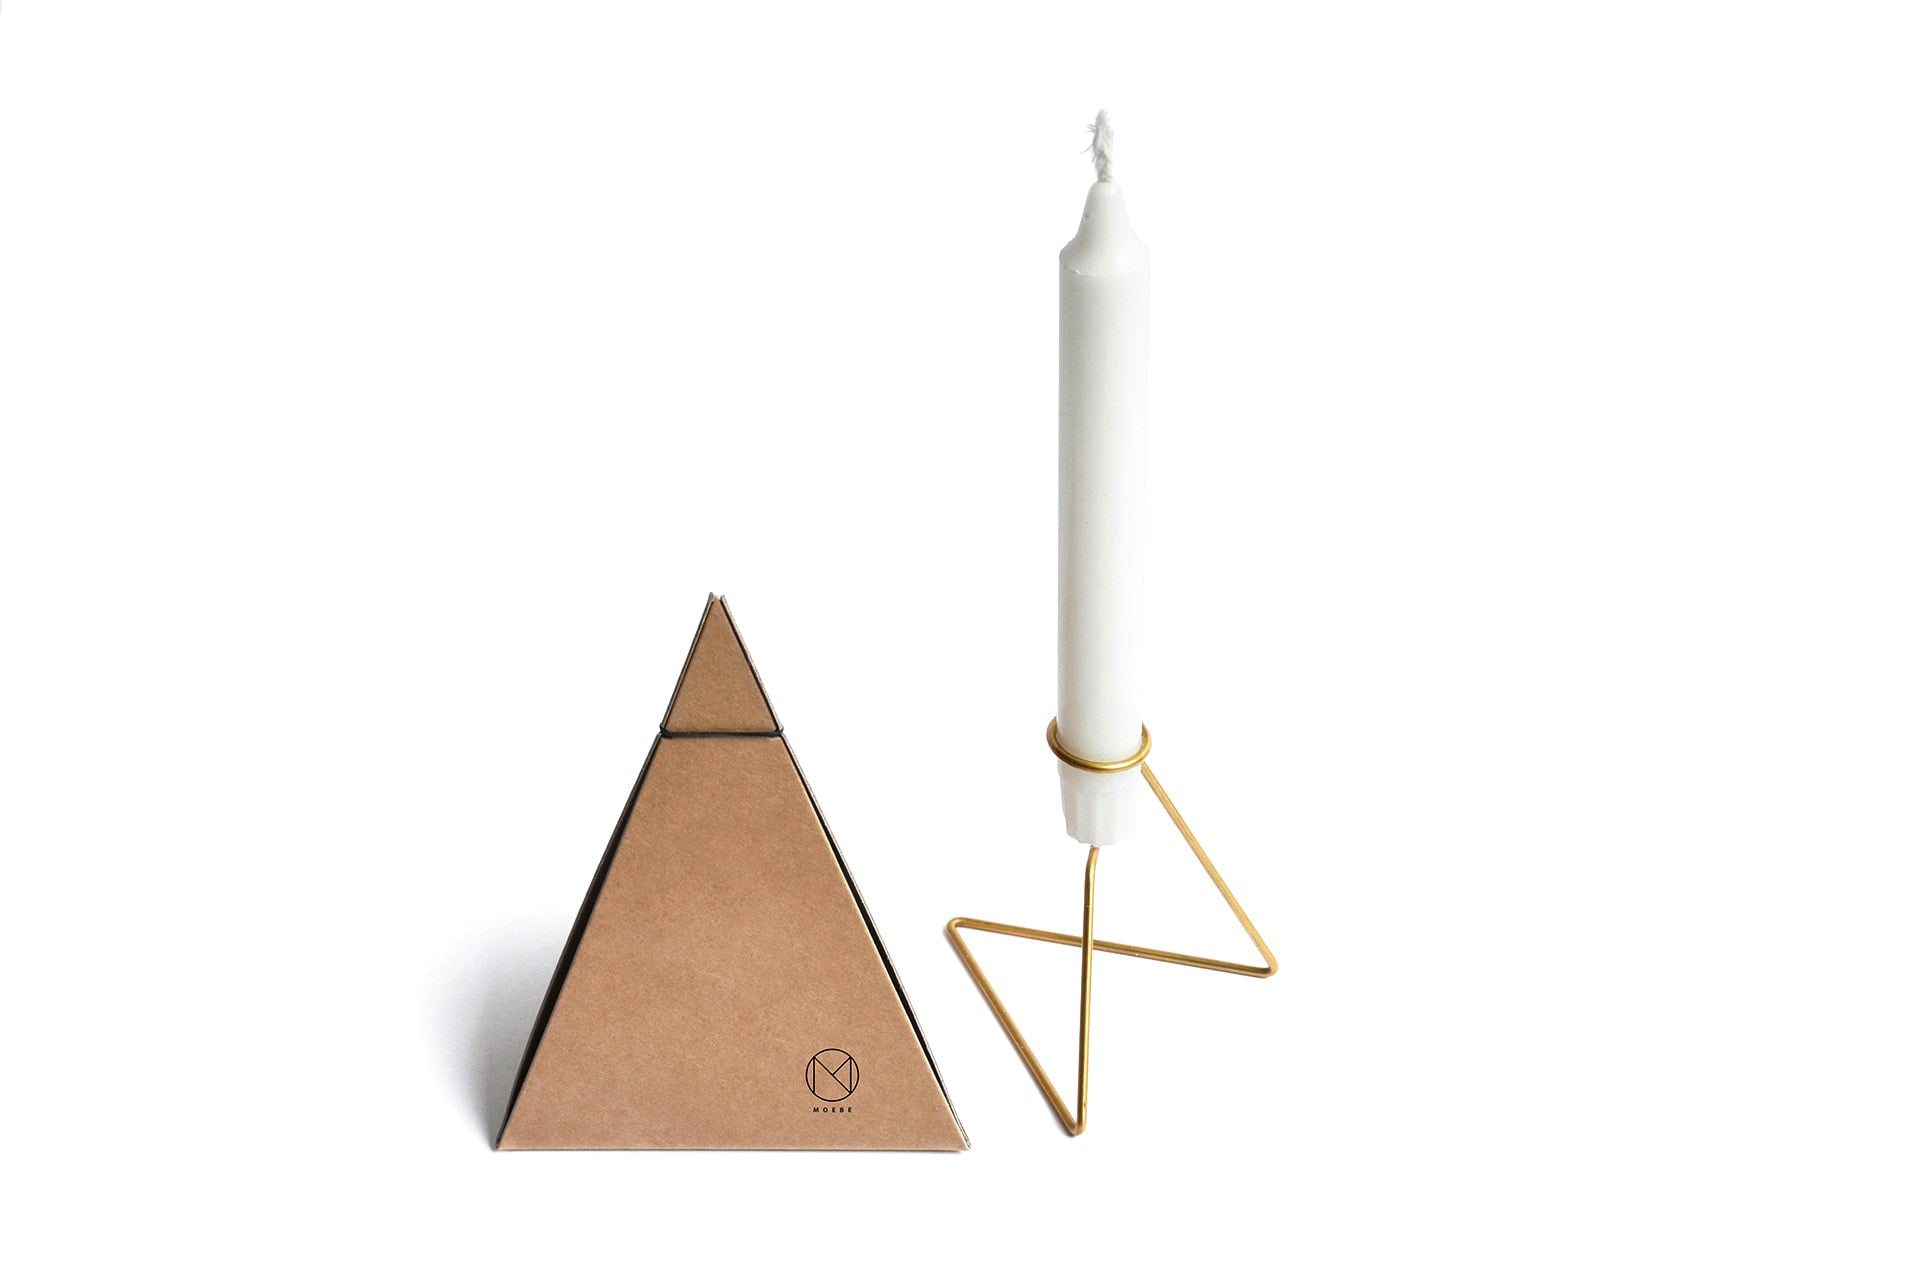 Porte-bougie unique sur pied en laiton, Candlelight by Moebe-packaging-en vente sur PARIDEO design durable